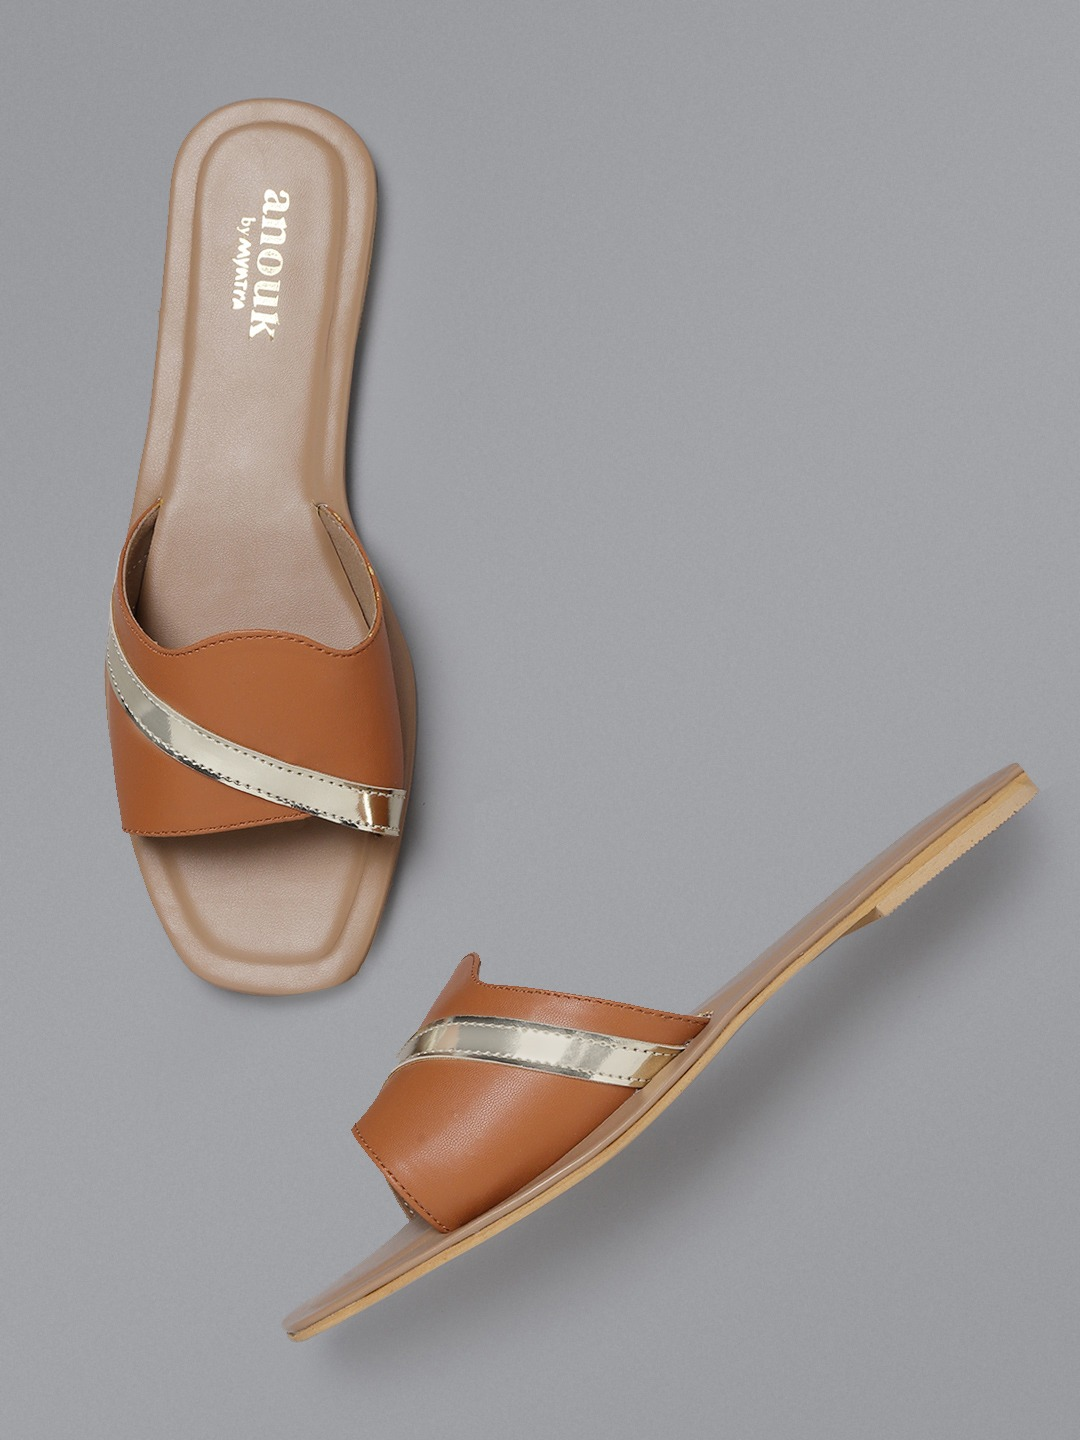 Tan Brown & Gold-Toned Solid Open Toe Flats